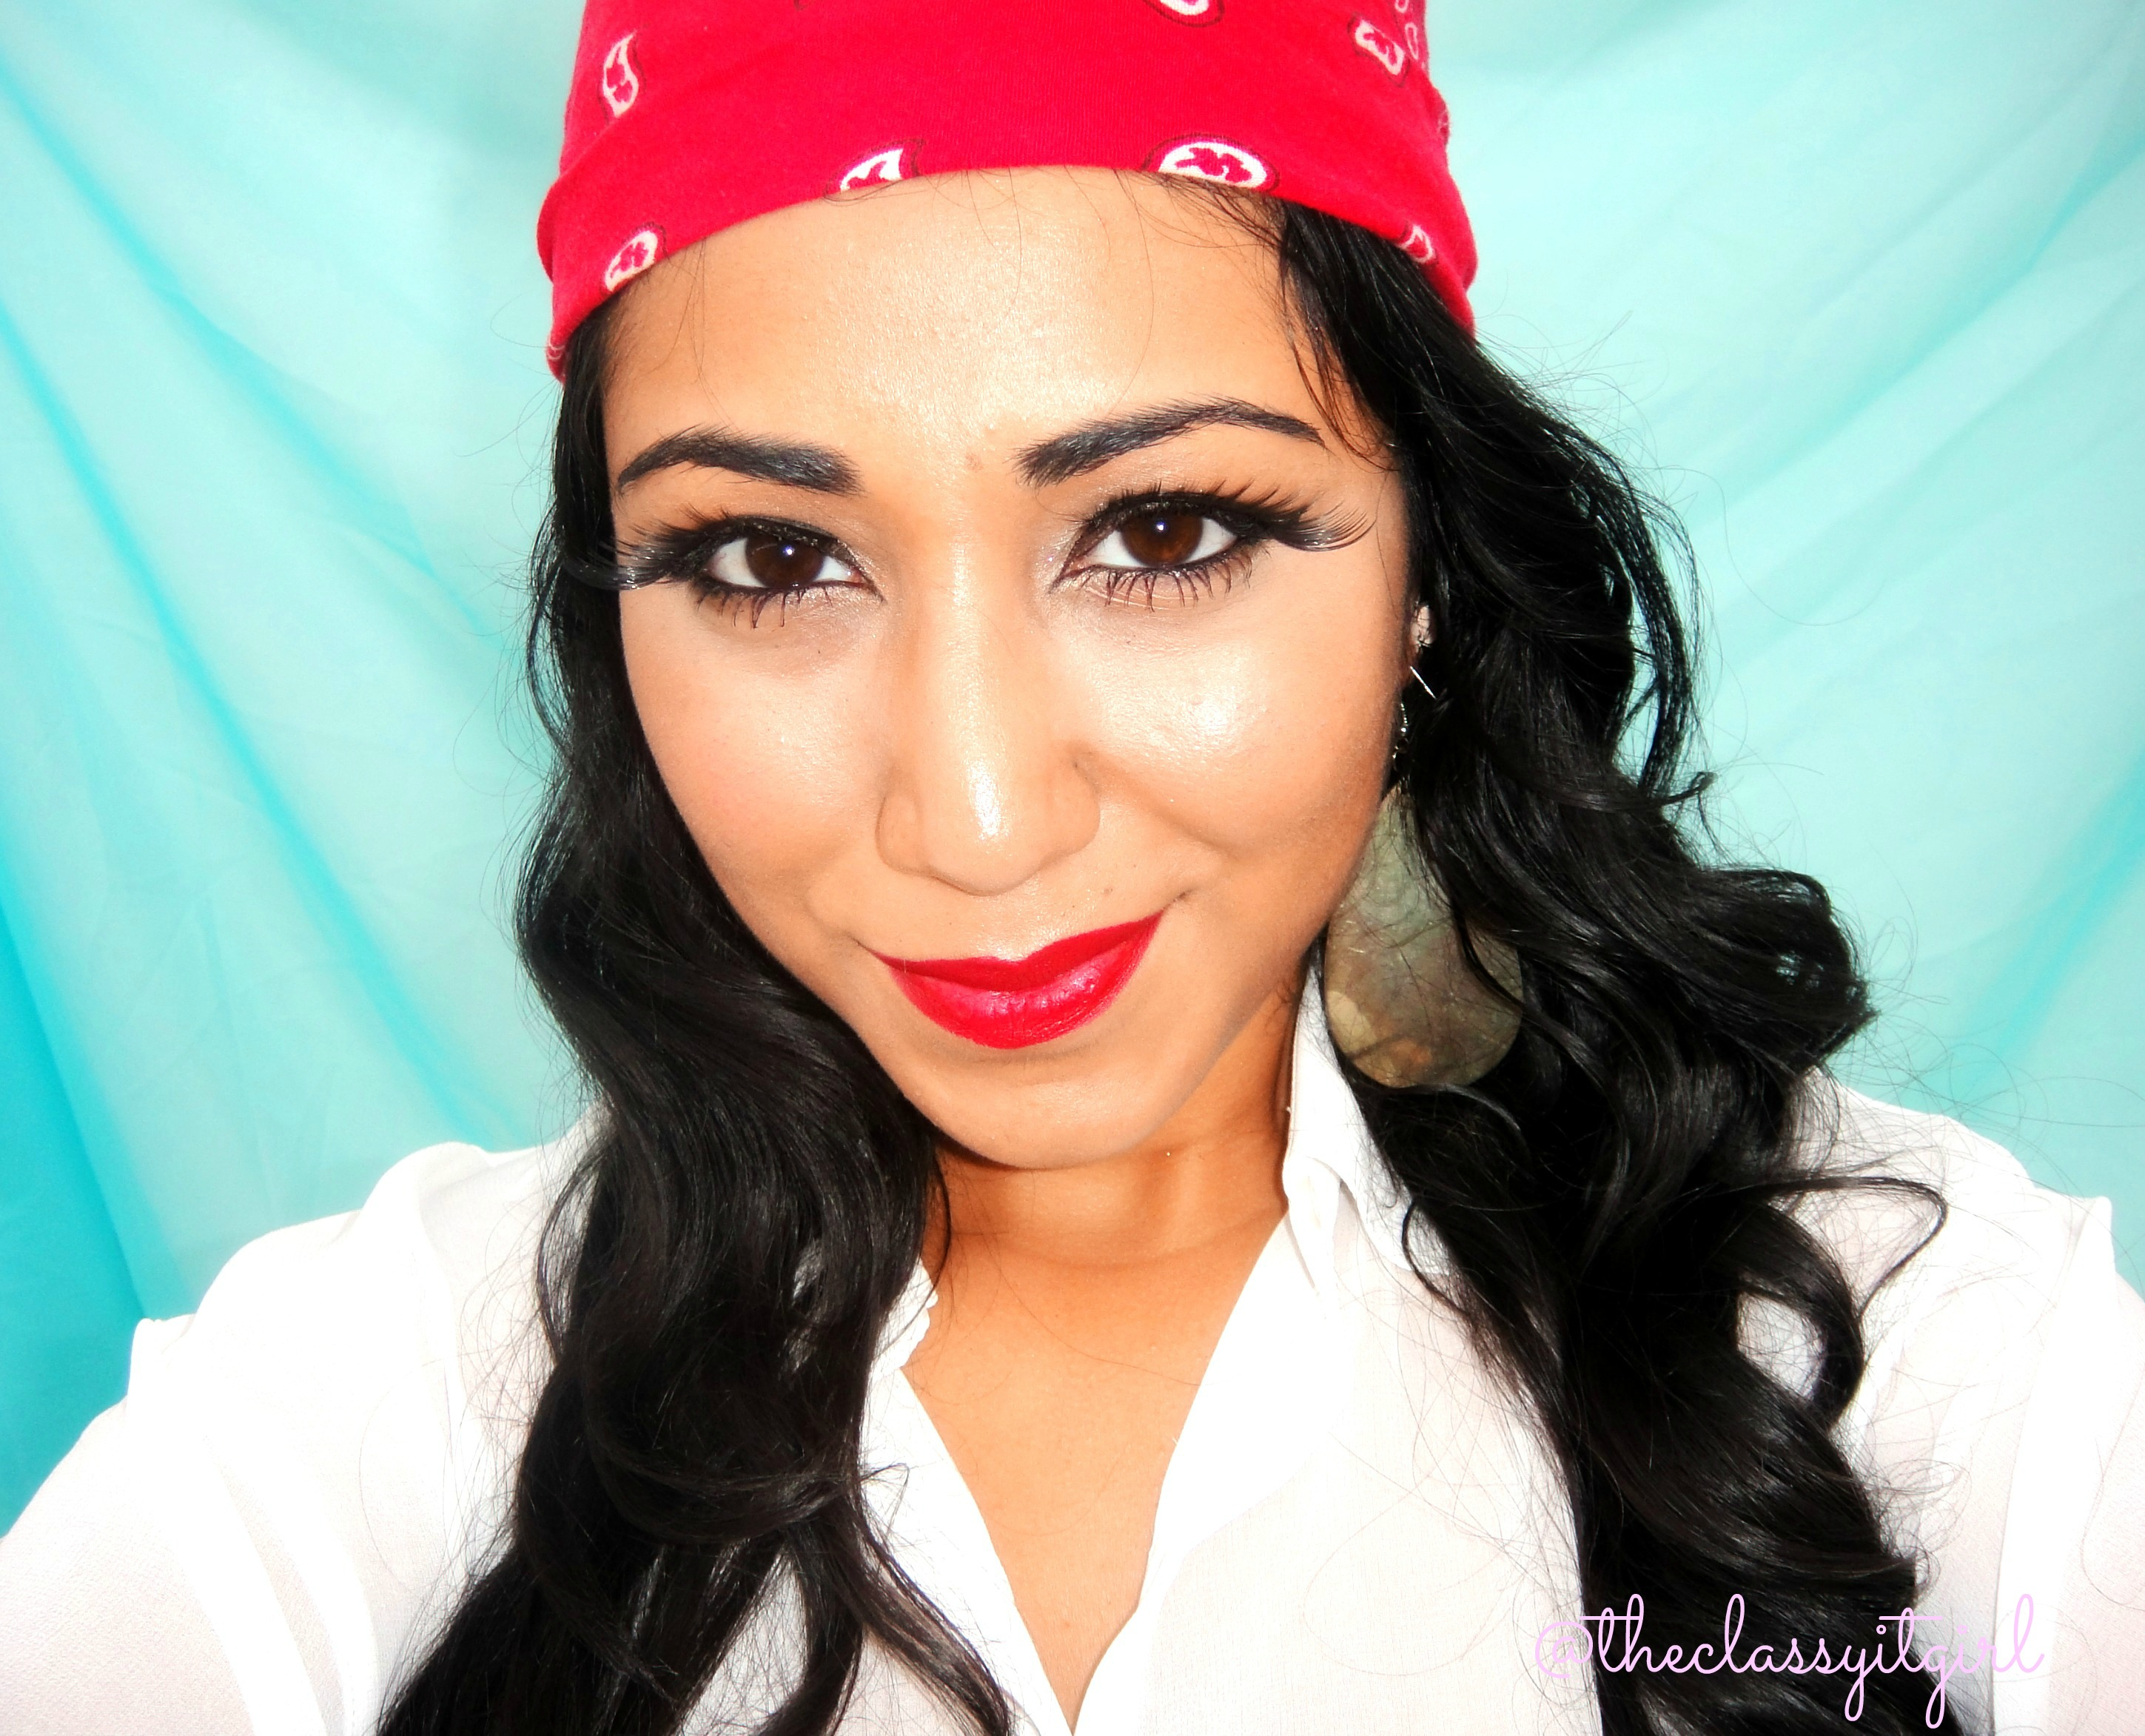 Pirate2  sc 1 st  Roxy James & Last Minute DIY Halloween Costumes! - Roxy James